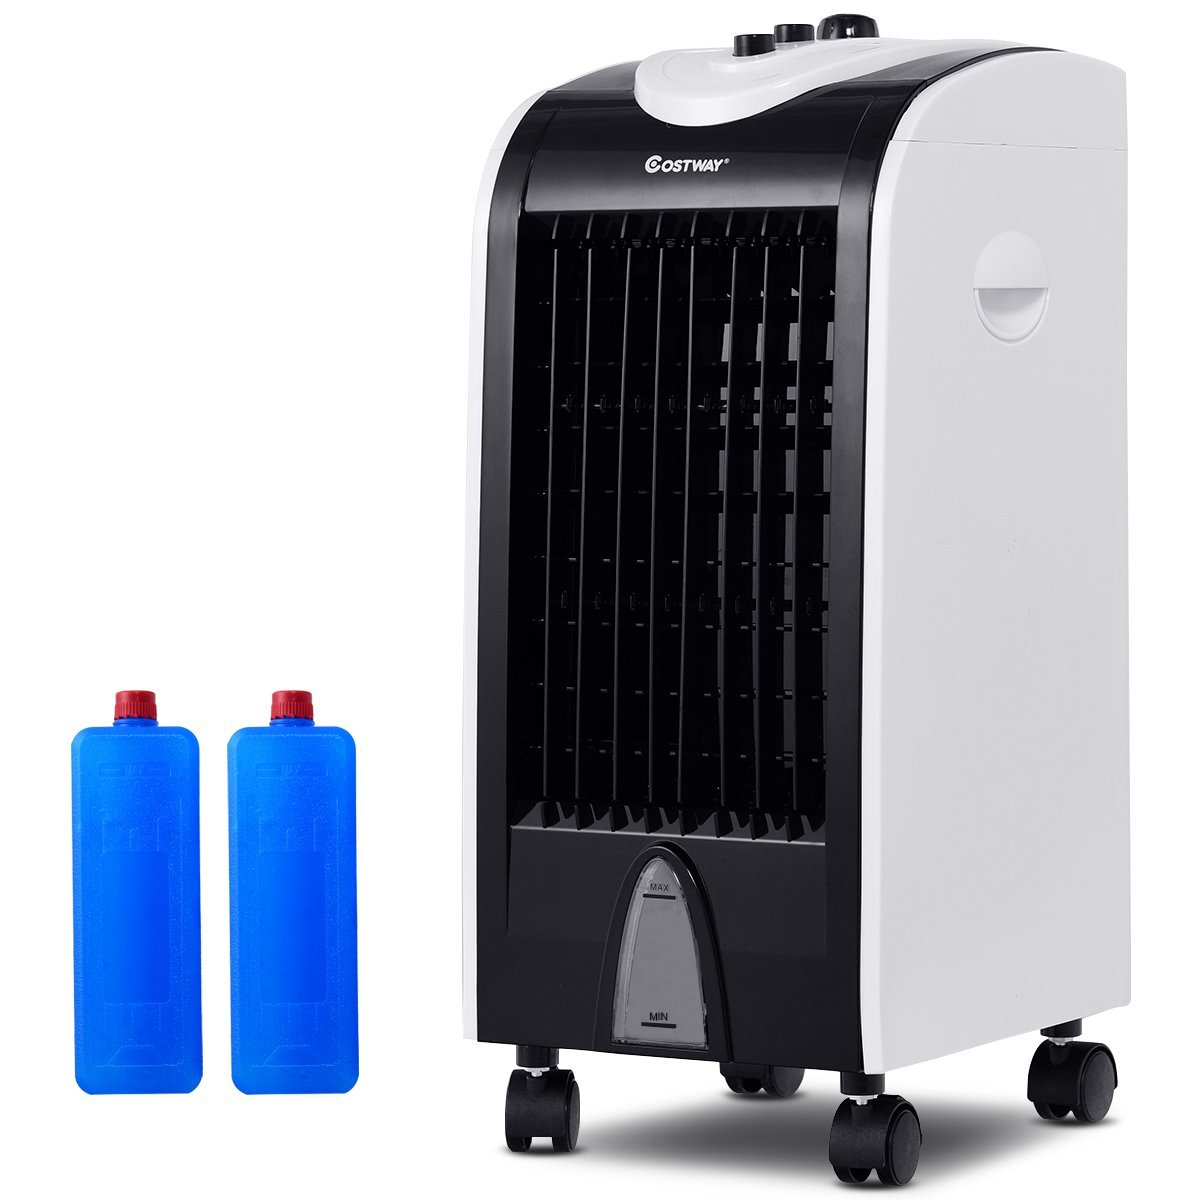 COSTWAY Evaporative Air Cooler with Fan & Humidifier Portable Bladeless Quiet Electric Fan with Filter Knob Control(24'' H)